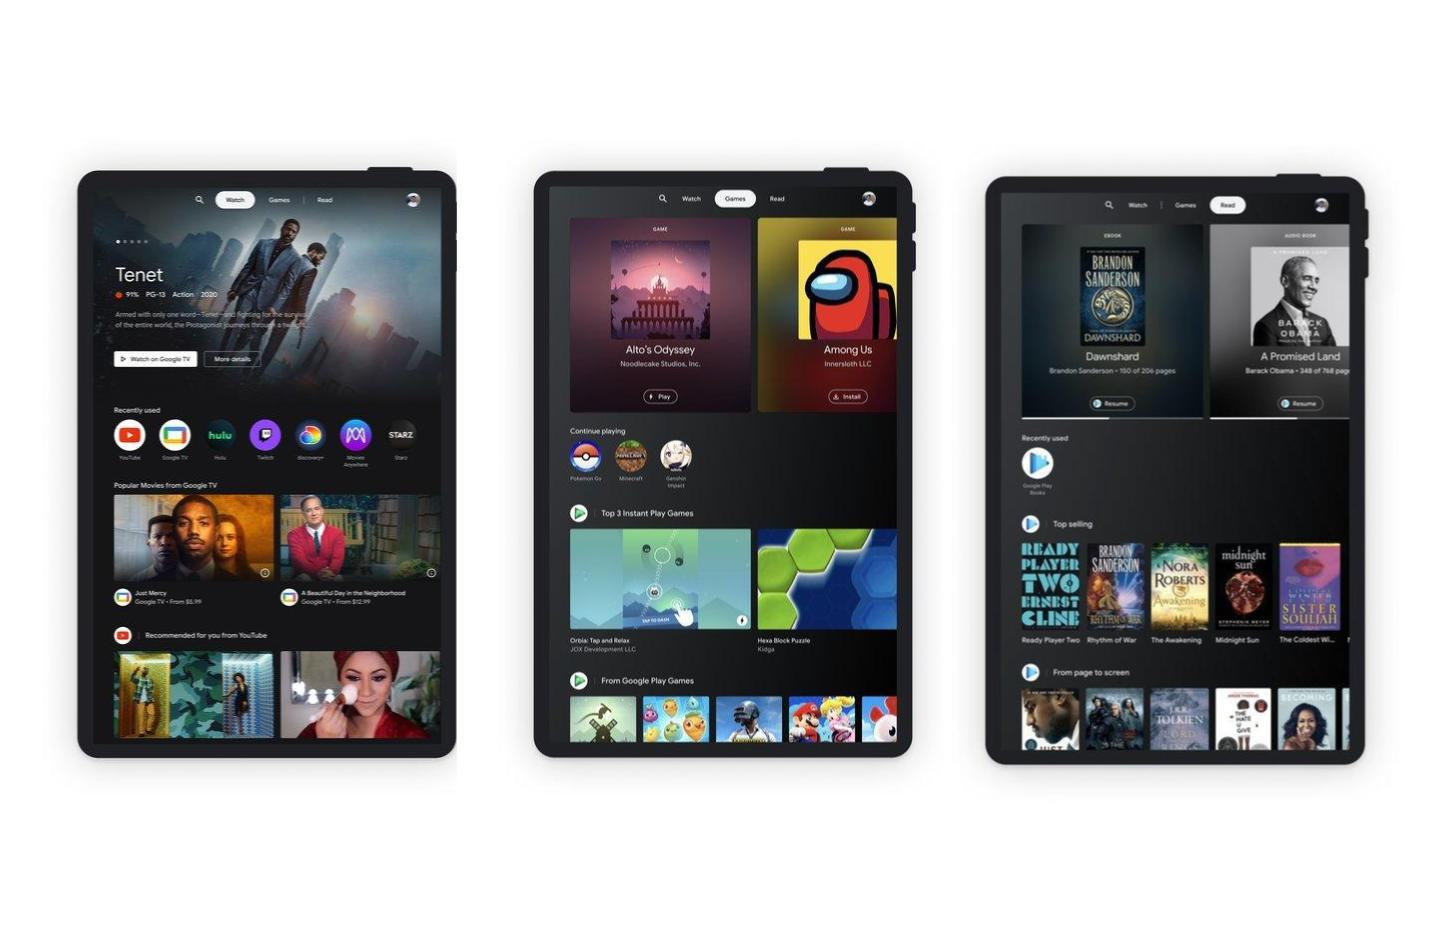 Google tente un come-back d'Android sur le marché des tablettes avec Entertainment Space